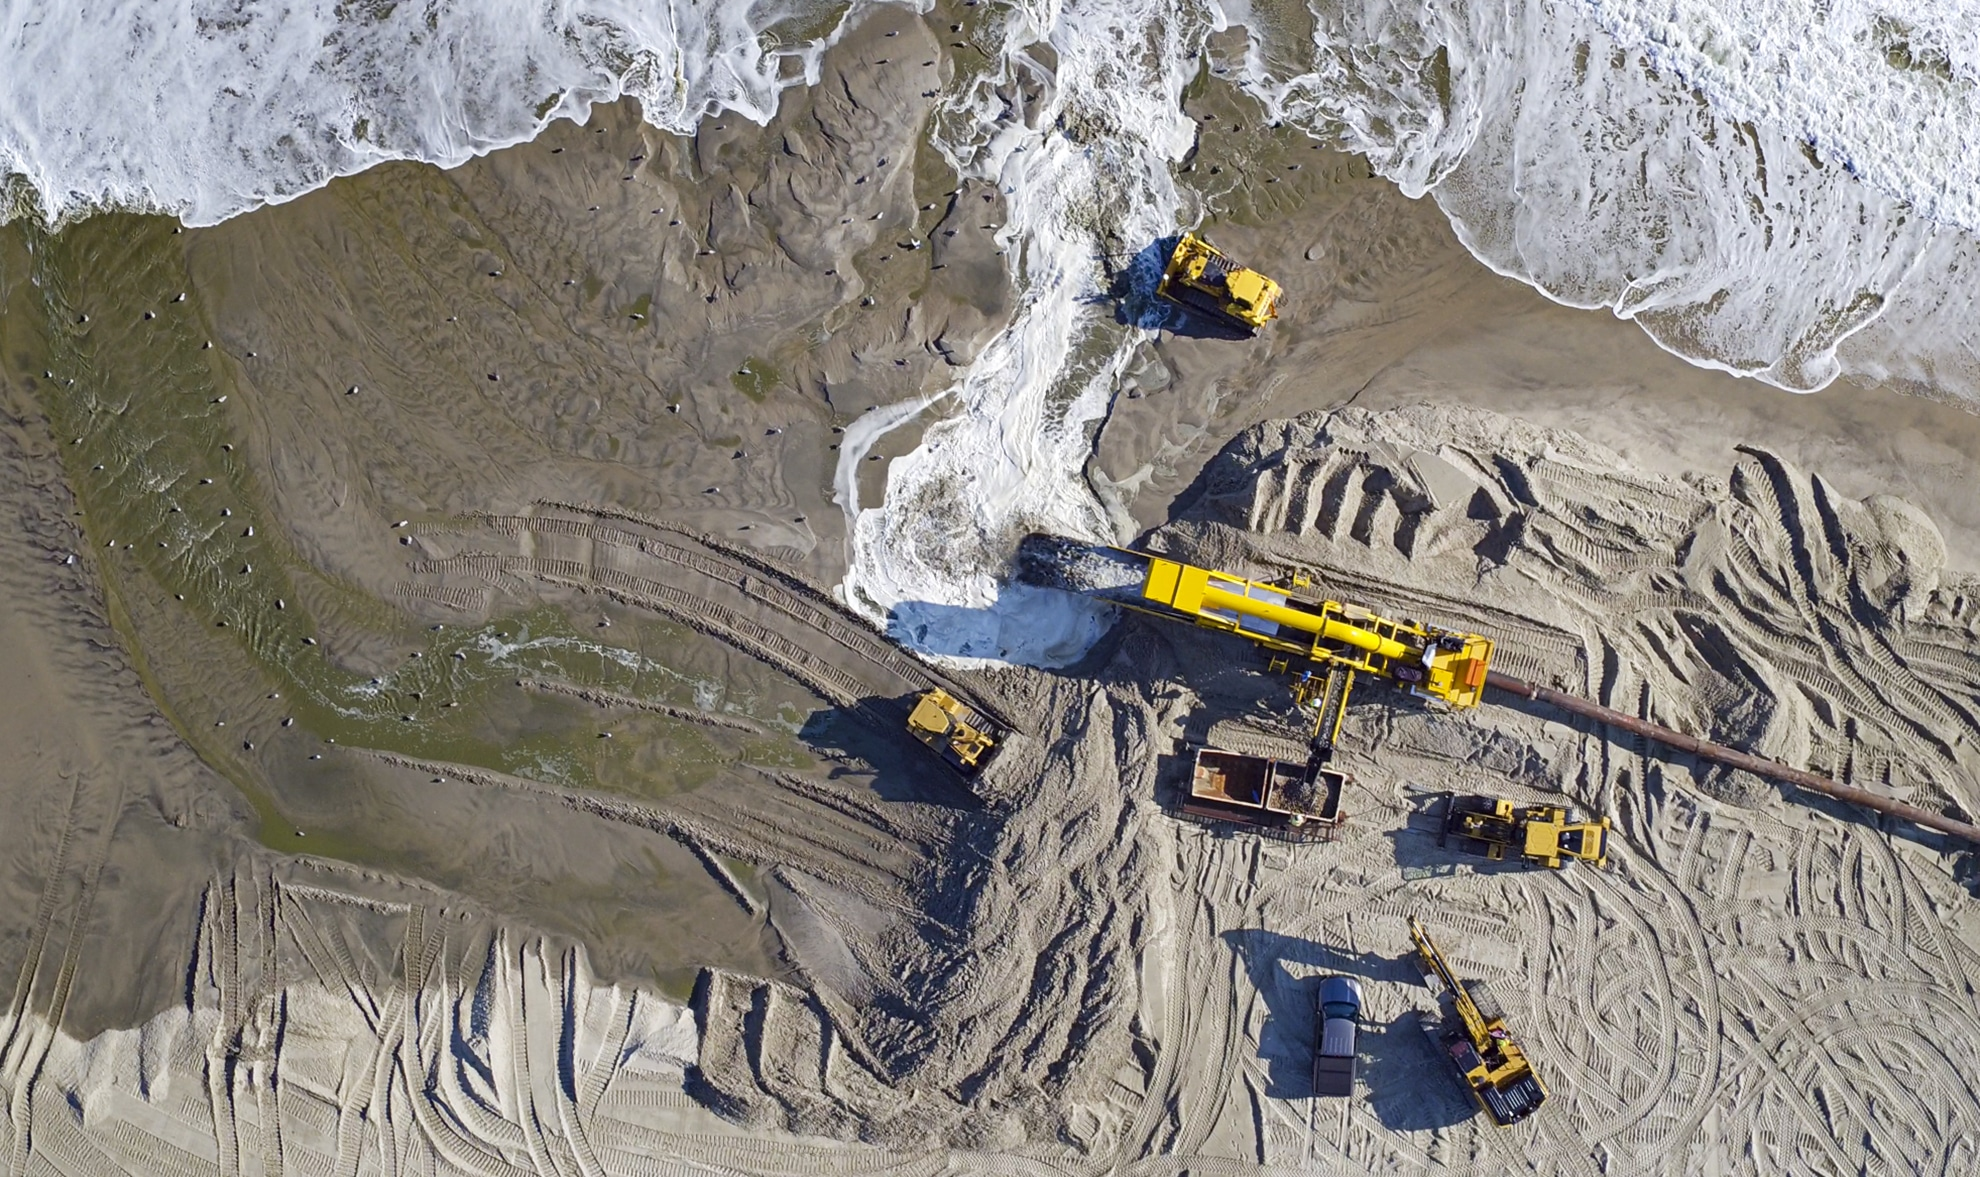 Photograph of beach reconstruction from a birds eye view taken with a drone